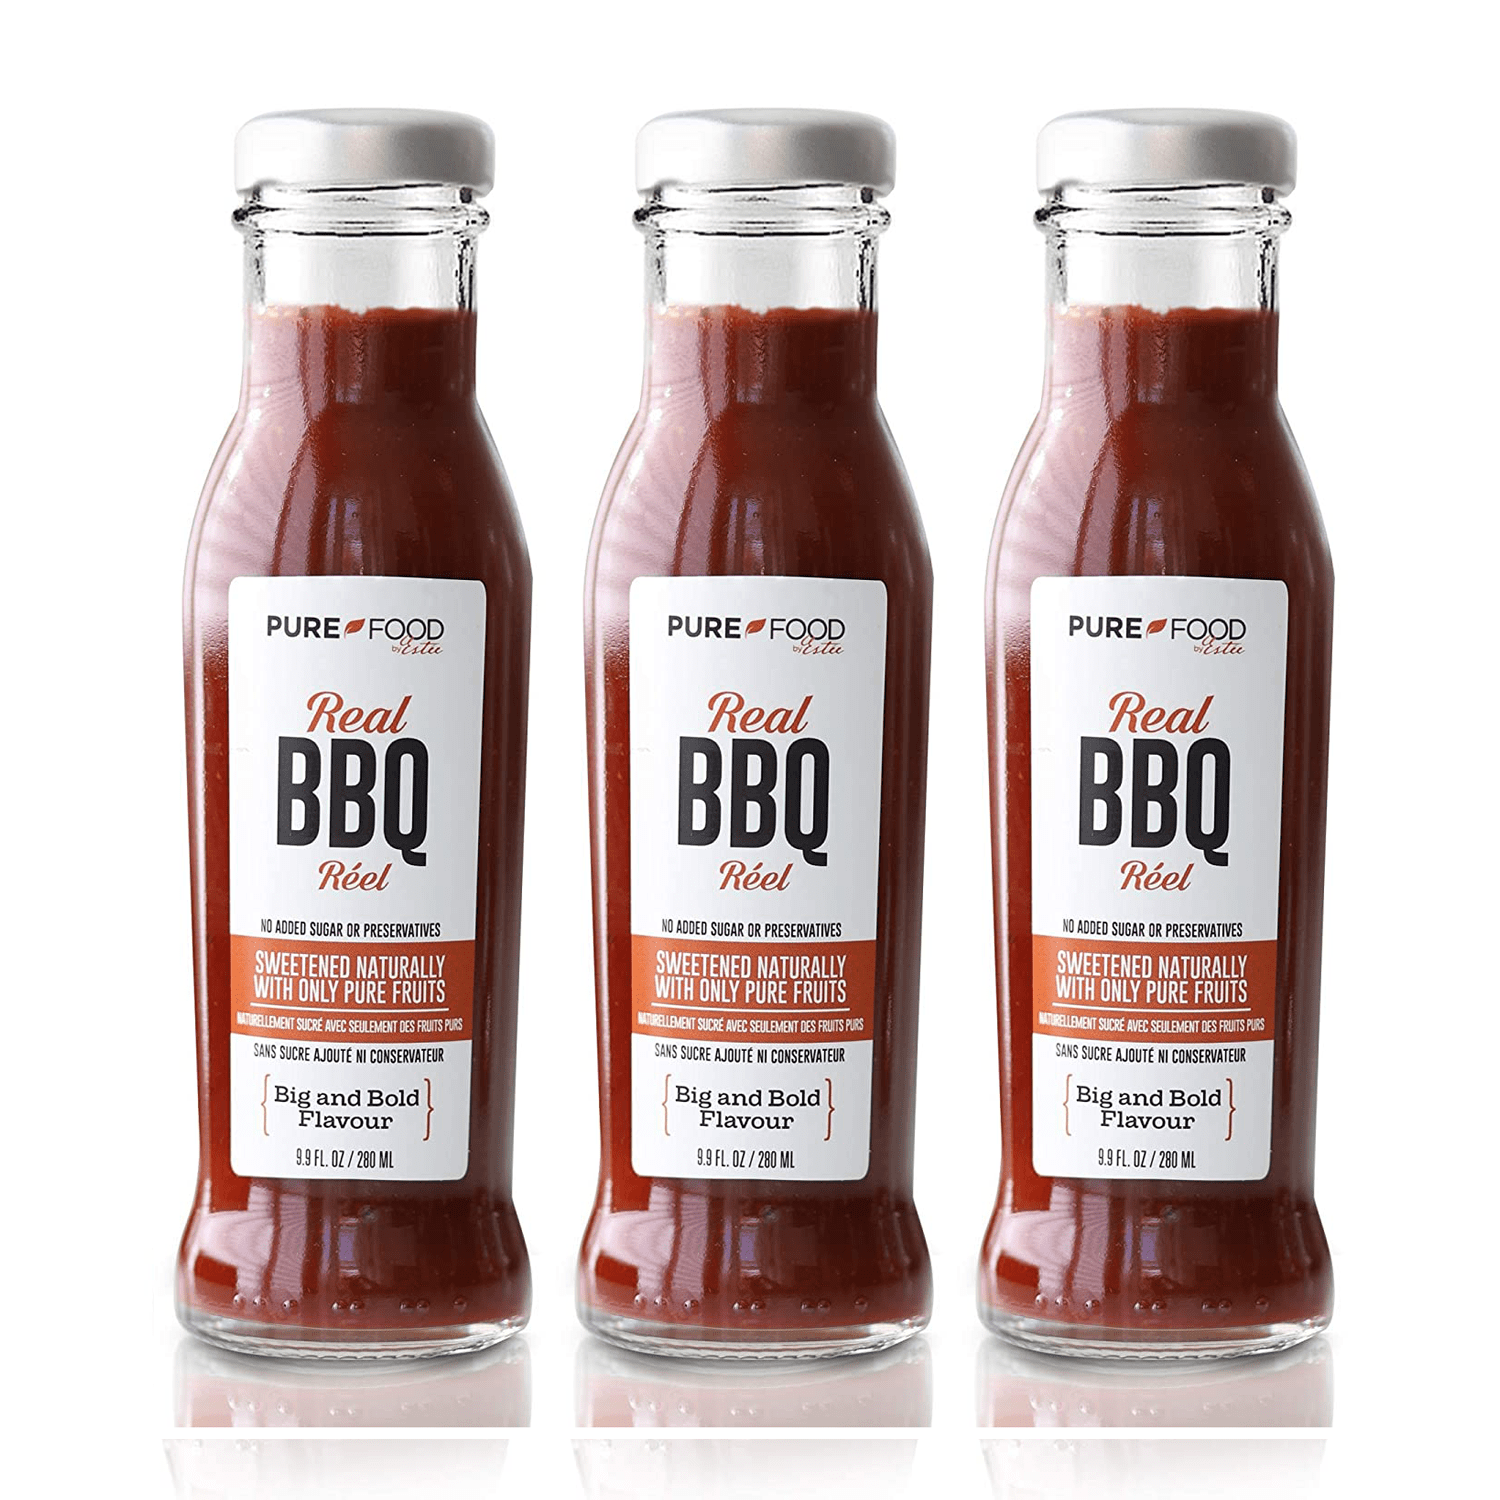 3 Pack - Real BBQ Sauce - Pure Food by Estee